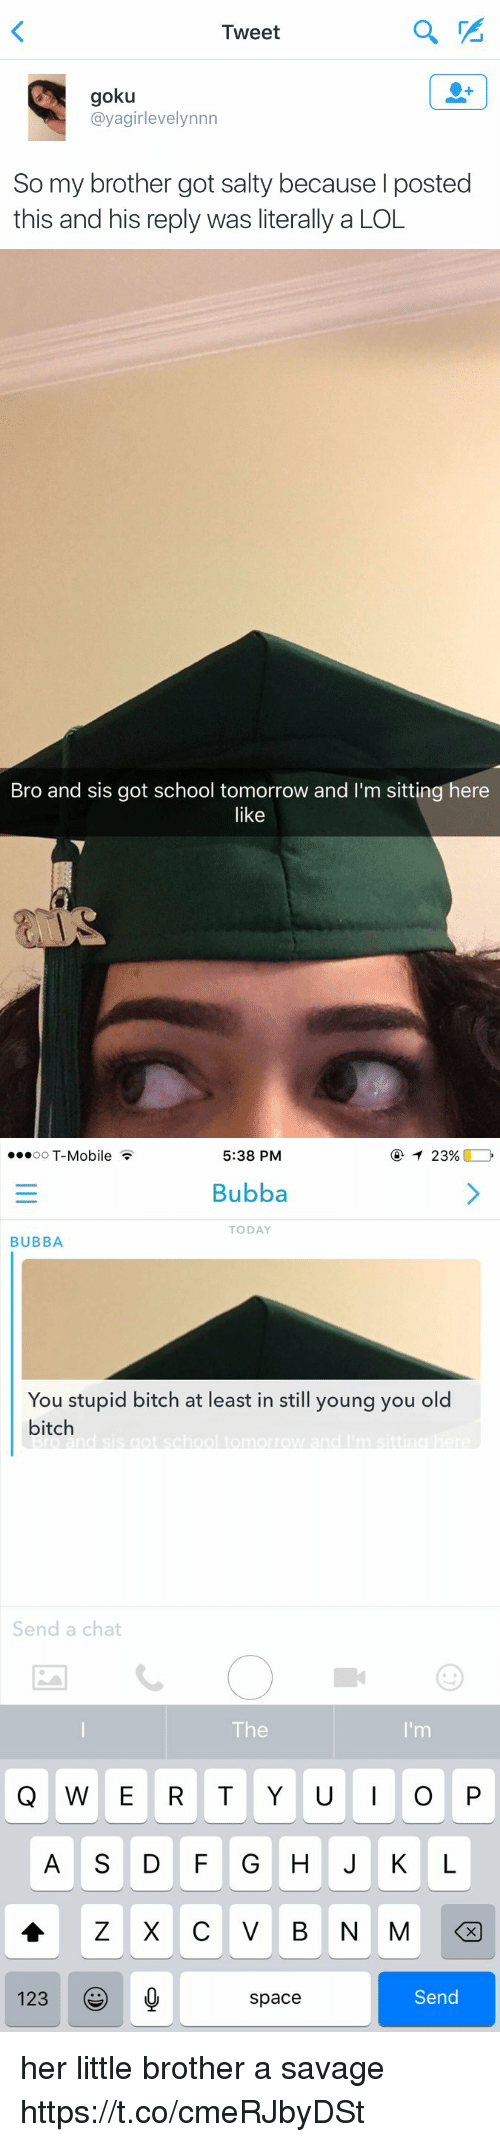 Bubba: Tweet  goku  @yagirlevelynnn  So my brother got salty because posted  this and his reply was literally a LOL   Bro and sis got school tomorrow and I'm sitting here  like   ...oo T-Mobile  5:38 PM  T 23%  Bubba  TODAY  BUBBA  You stupid bitch at least in still young you old  bitch  d sis got school omorrow and 'm si tina  Send a chat  Q W E R T Y U I O P  A D G H J K L  Z X C V B N M  123  Send  Space her little brother a savage https://t.co/cmeRJbyDSt